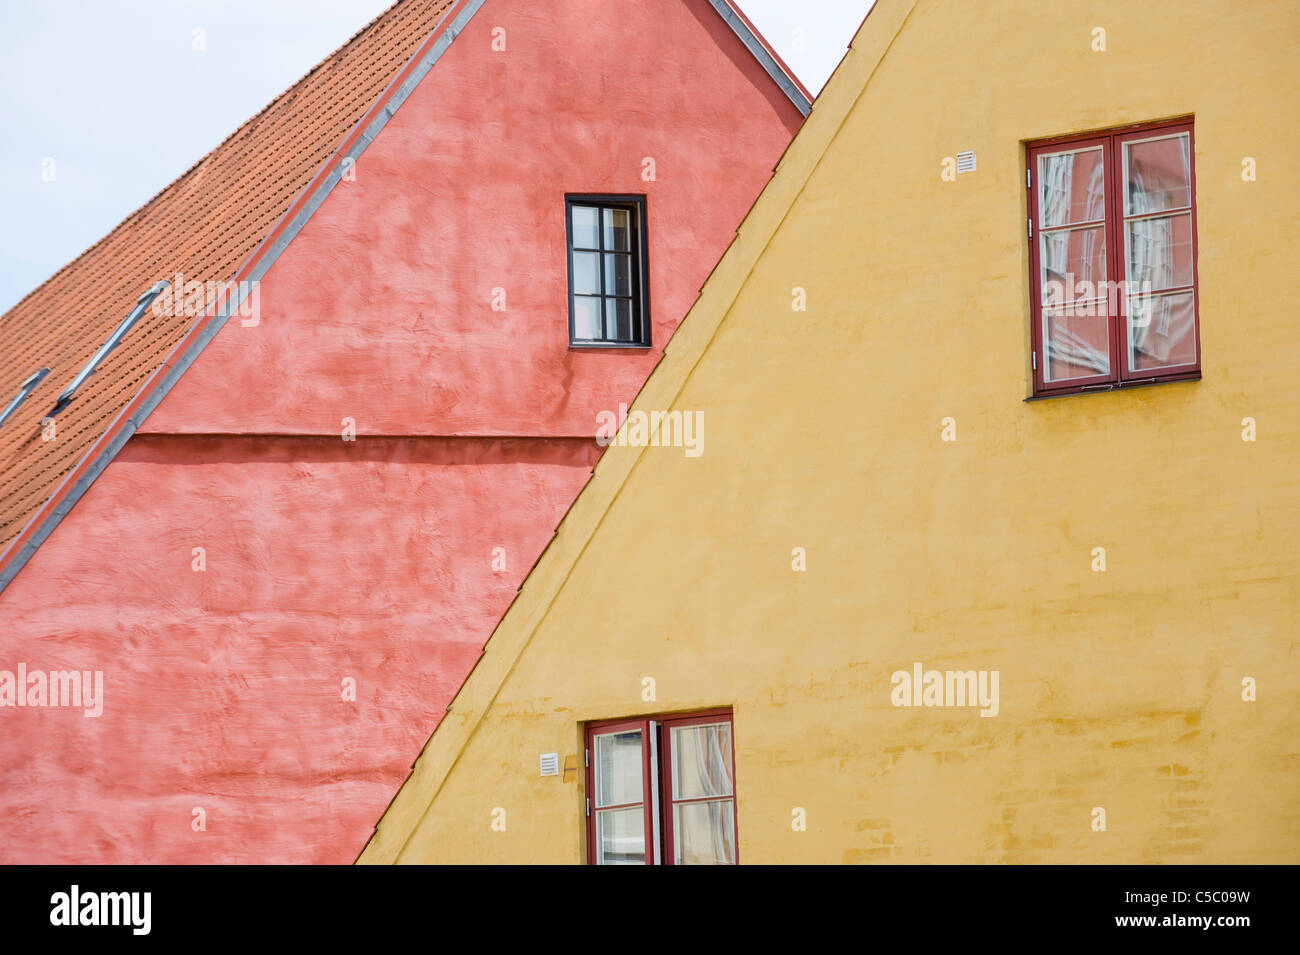 Detail of pink and yellow medieval houses - Stock Image